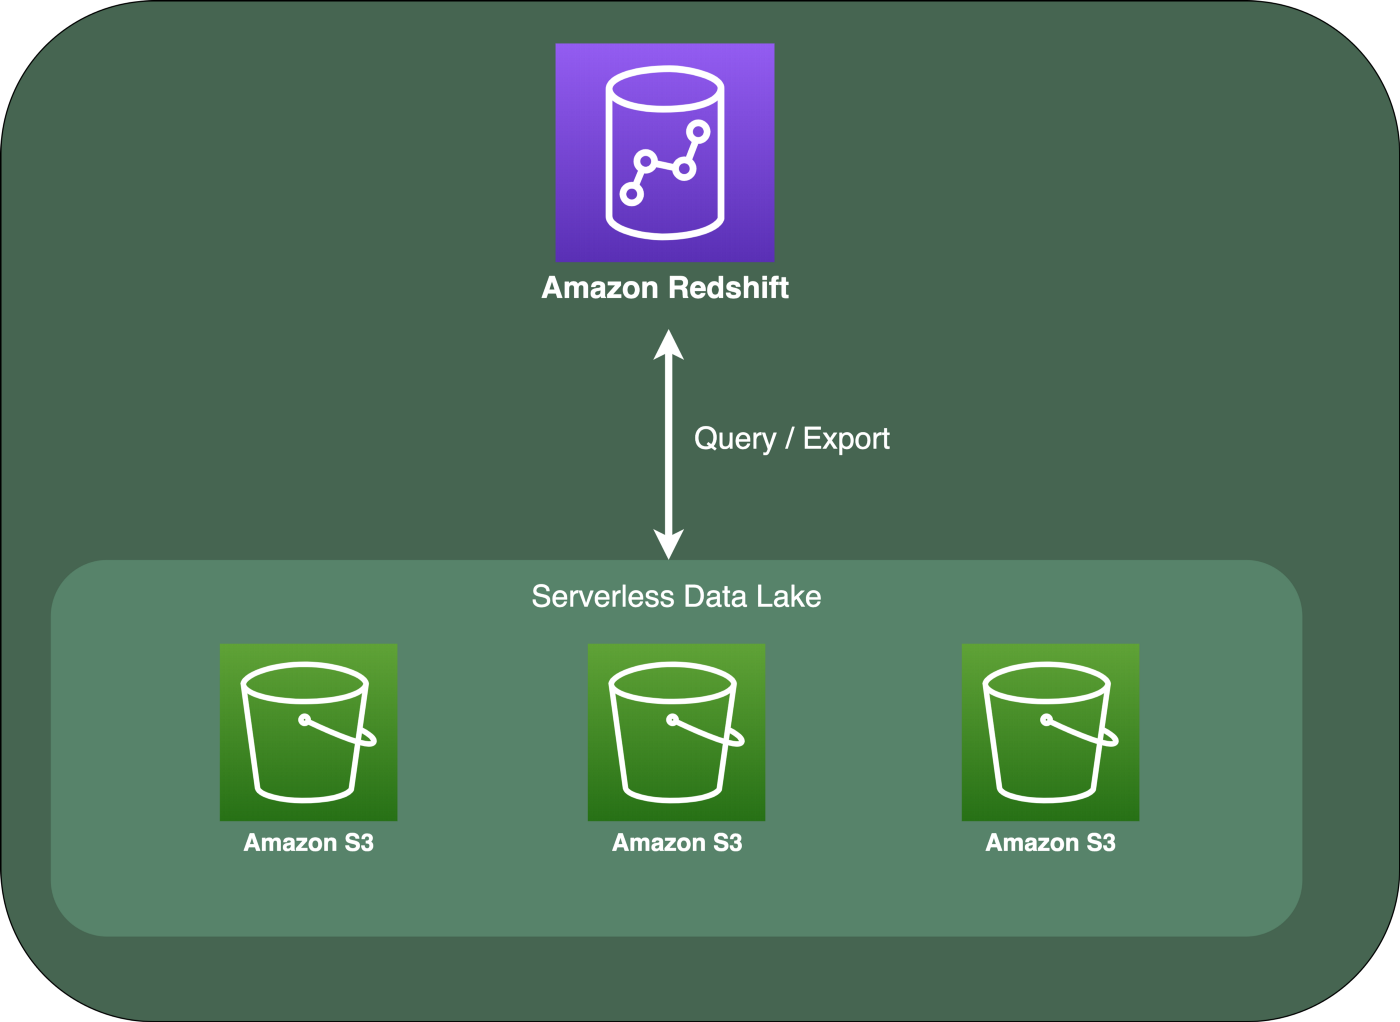 Same queries of the Serverless data lake, with Redshift in place of Athena